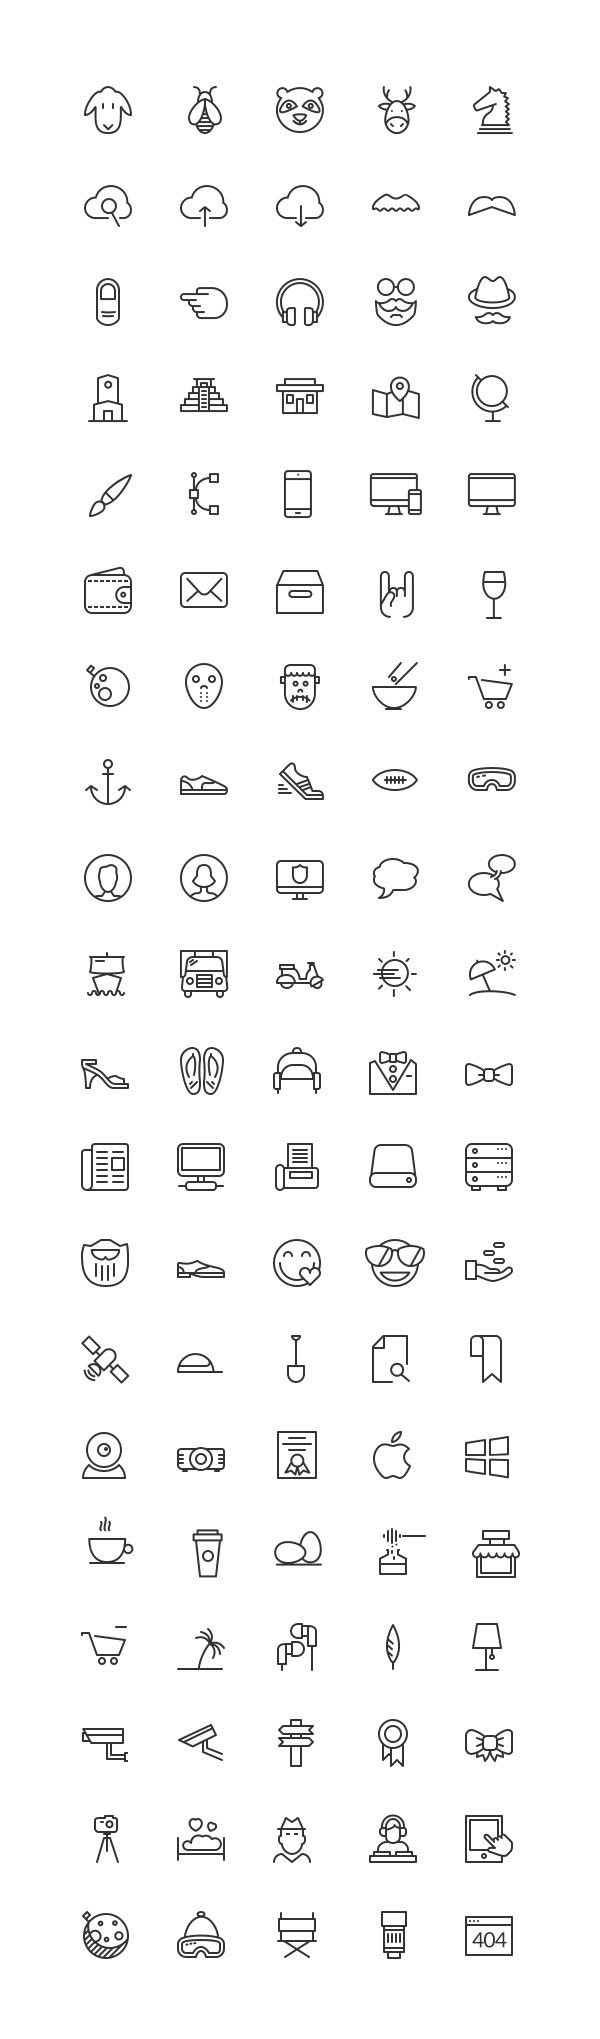 Free Download : Icons Mind – 100 Free iOS 8 Icons | Designbeep